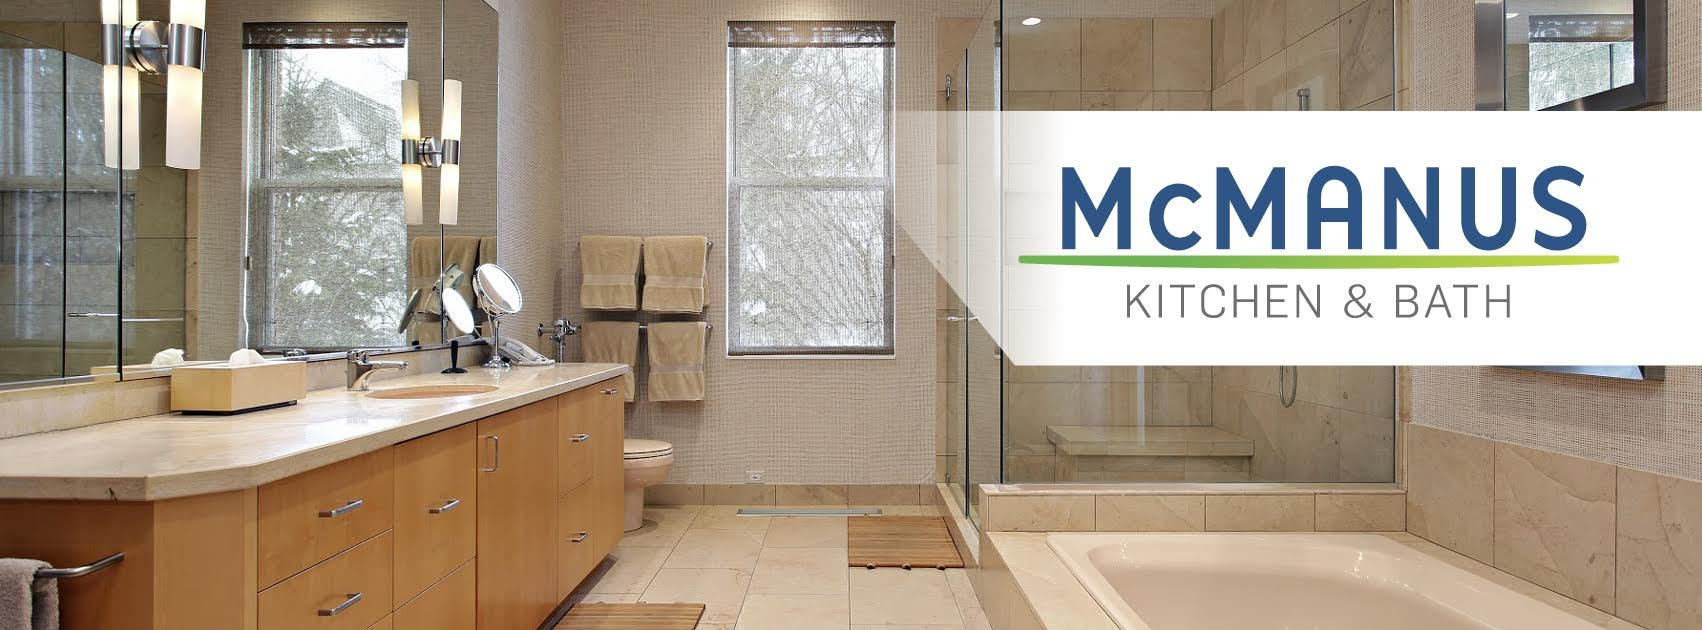 Bathroom Remodeling In Tallahassee Mcmanus Kitchen And Bath